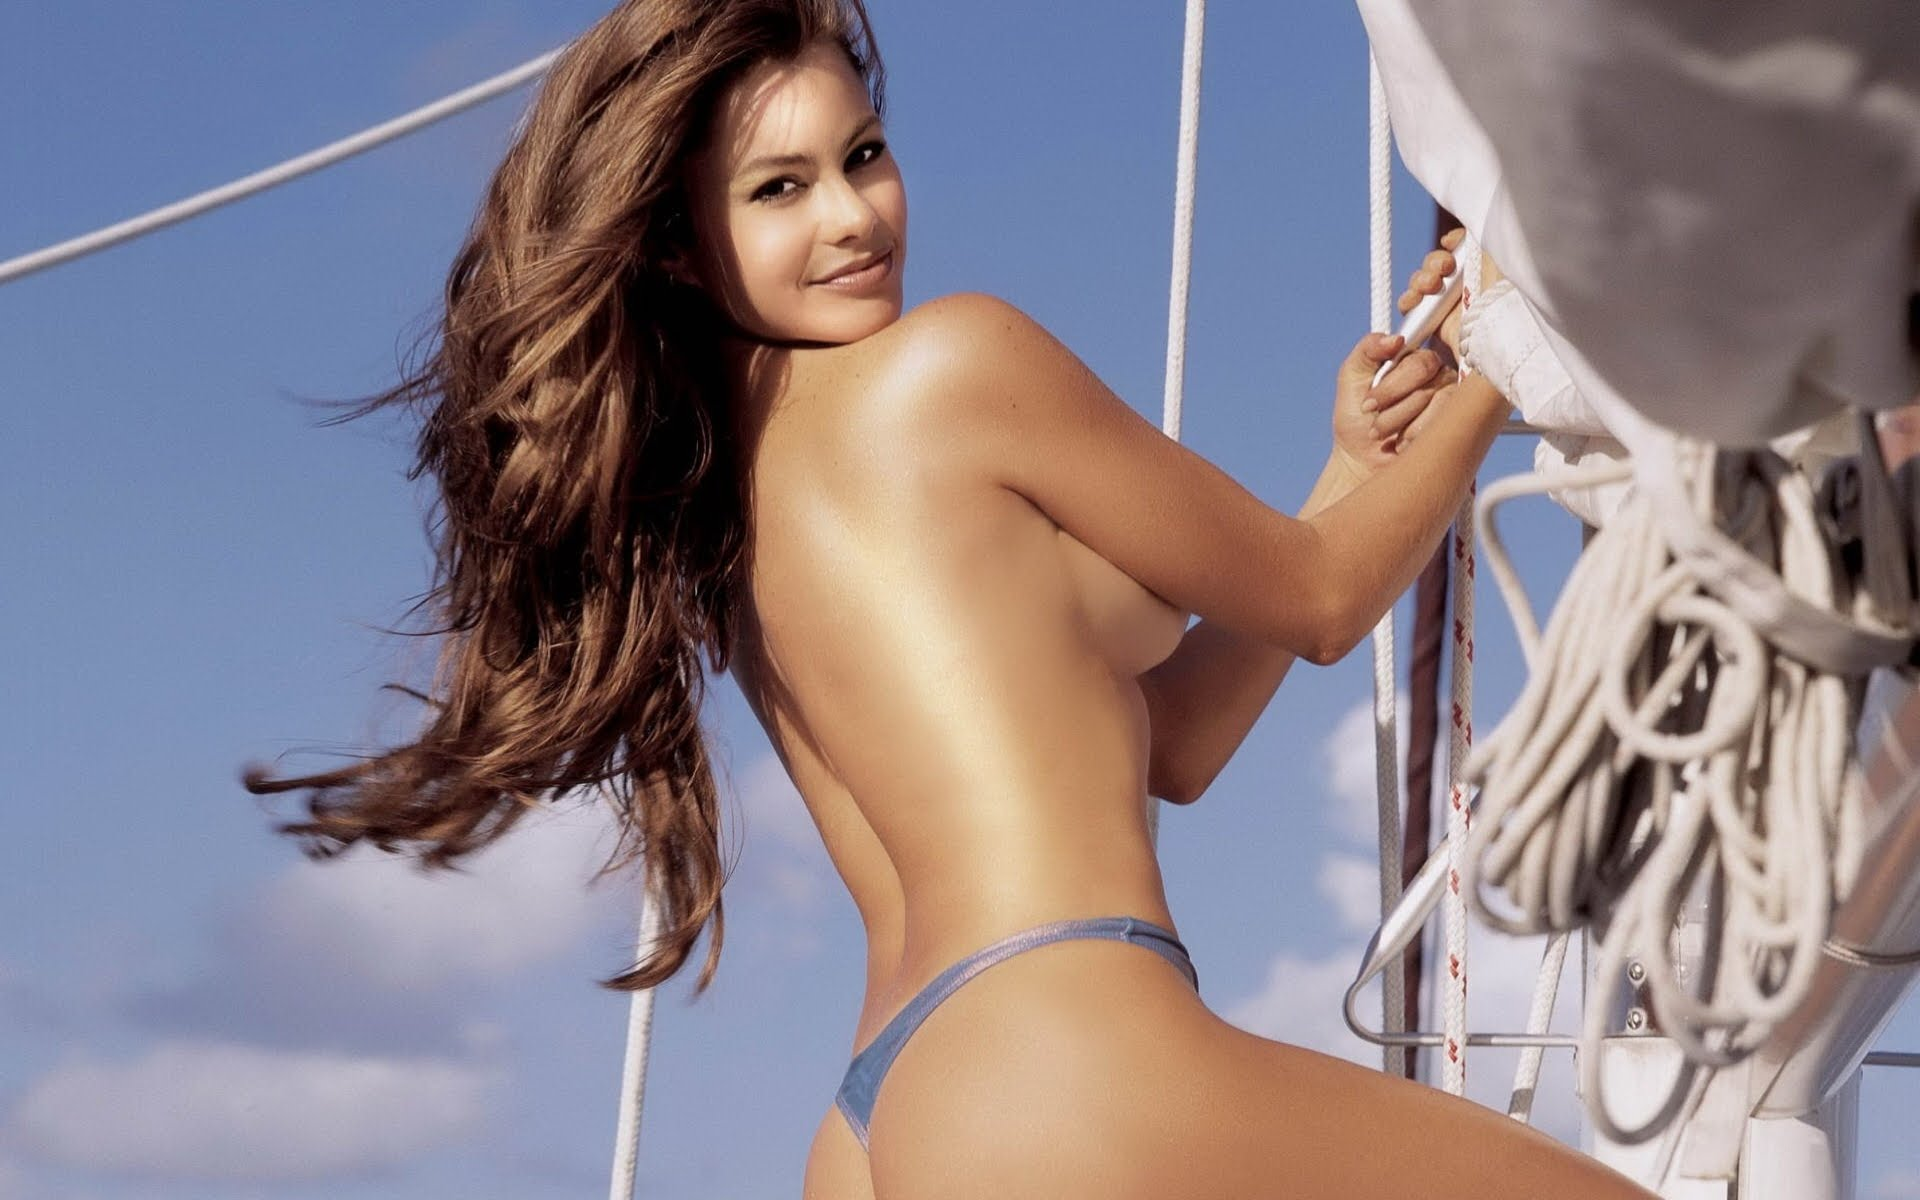 Top 10 Sexiest Models Of 2015 ||You Are Gonna Shocked To See 1st One||